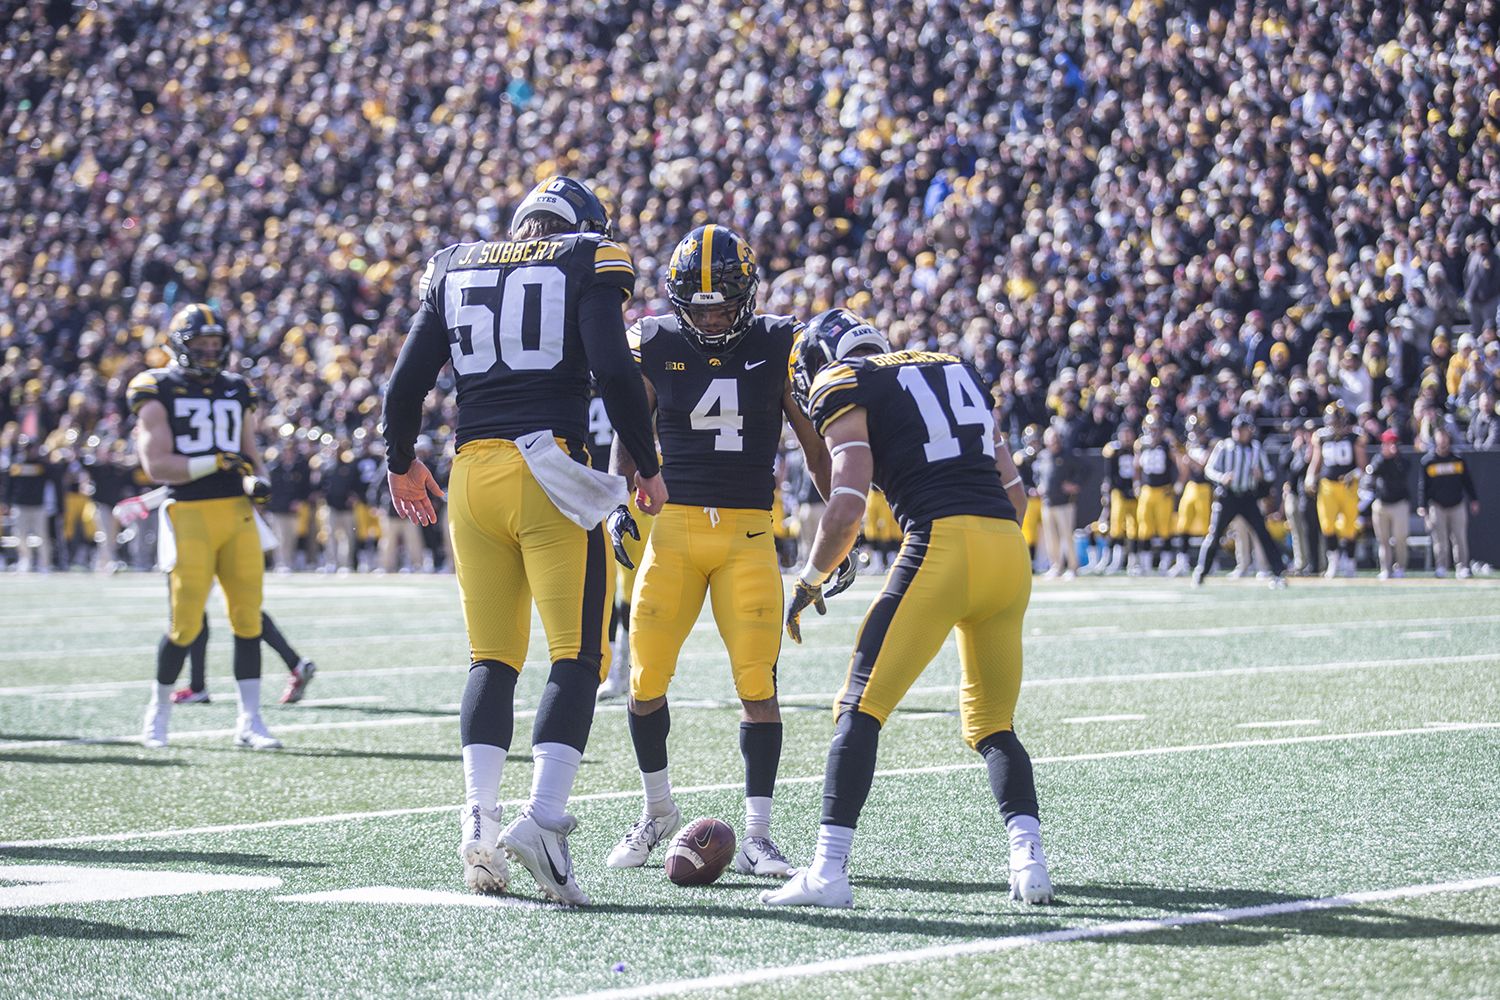 The+Iowa+special+teams+unit+surrounds+the+football+after+a+punt+during+a+football+game+between+Iowa+and+Maryland+in+Kinnick+Stadium+on+Saturday%2C+October+20%2C+2018.+The+Hawkeyes+defeated+the+Terrapins%2C+23-0.+